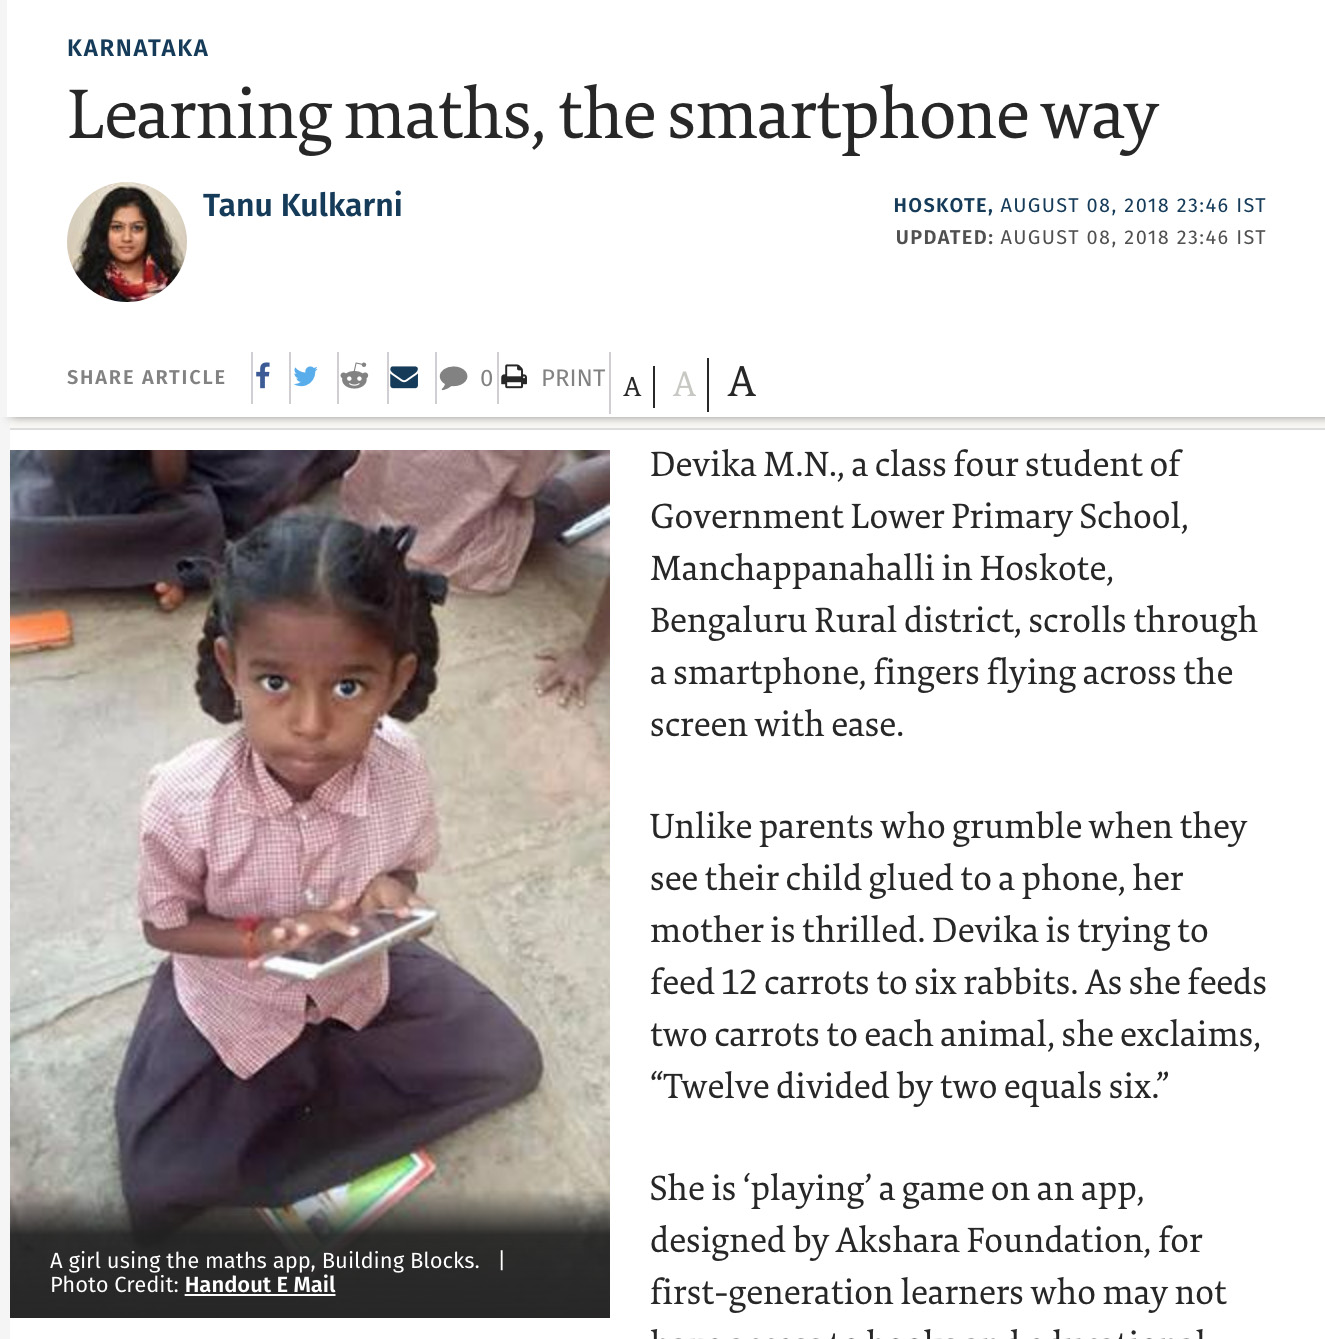 Learning maths, the smartphone way